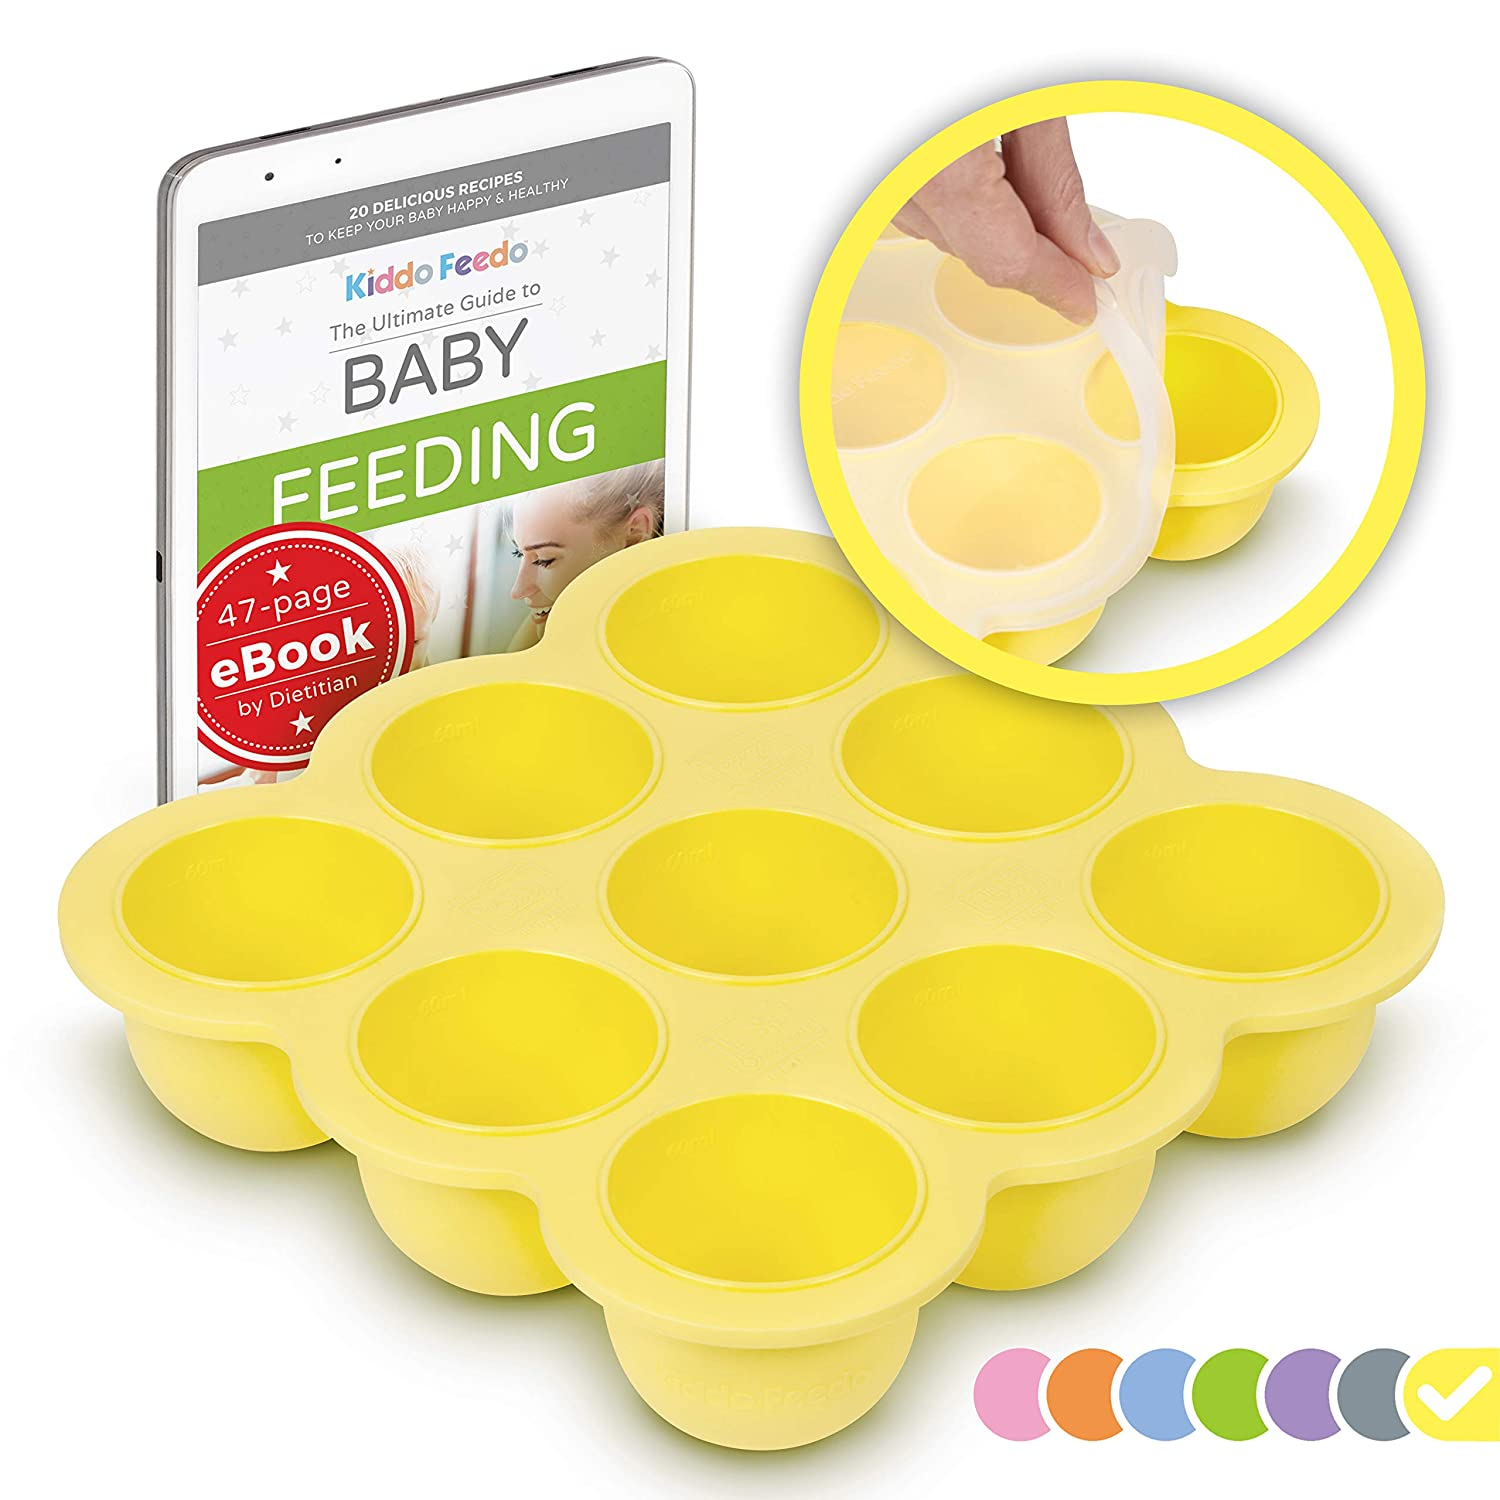 KIDDO FEEDO Baby Food Holder Tray with Silicone Clip-On Lid - Multipurpose Use - Free E-Book by Award-Winning Author/Dietitian - Yellow